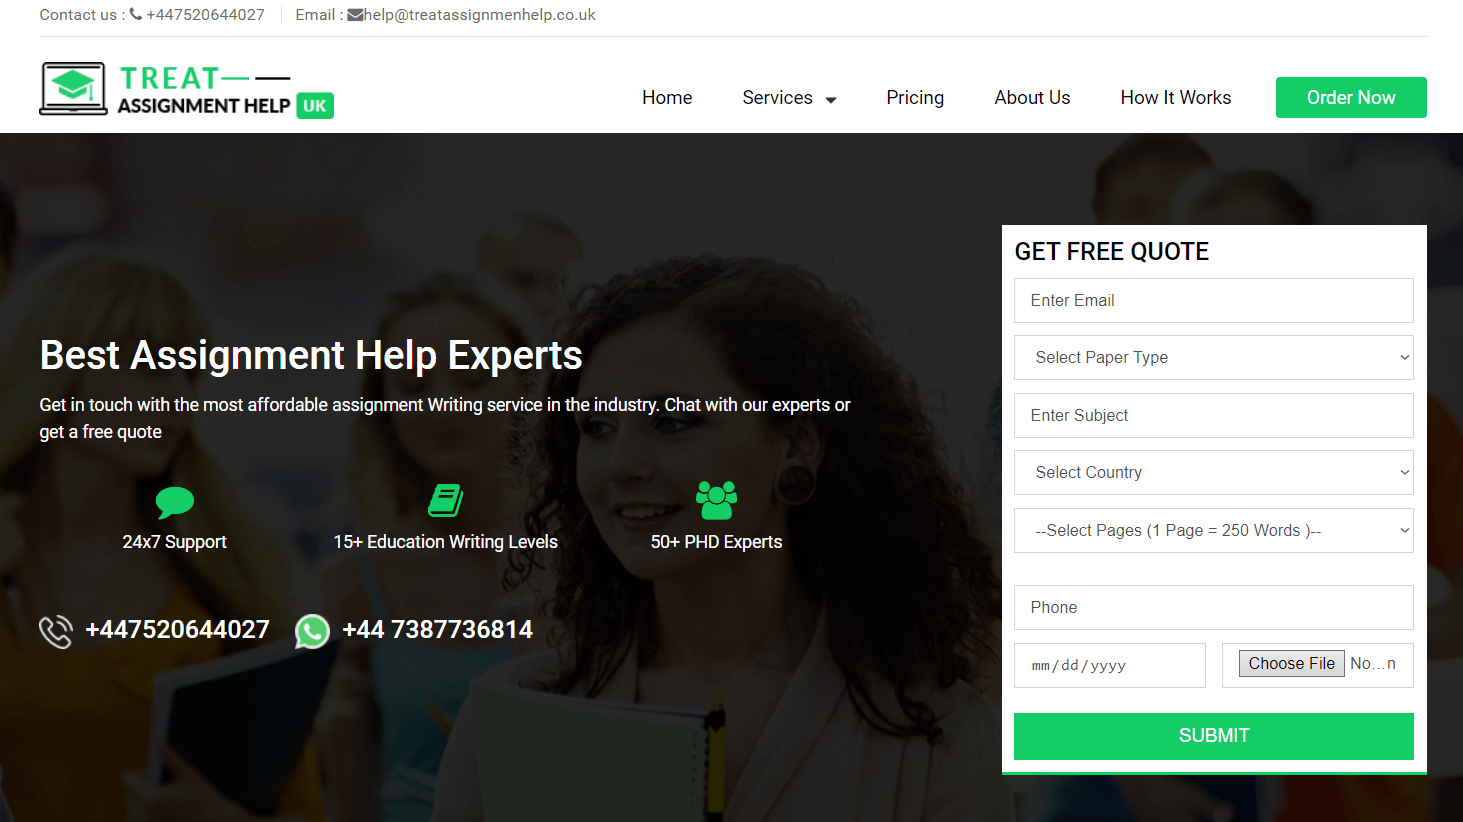 treatassignmenthelp.co.uk review